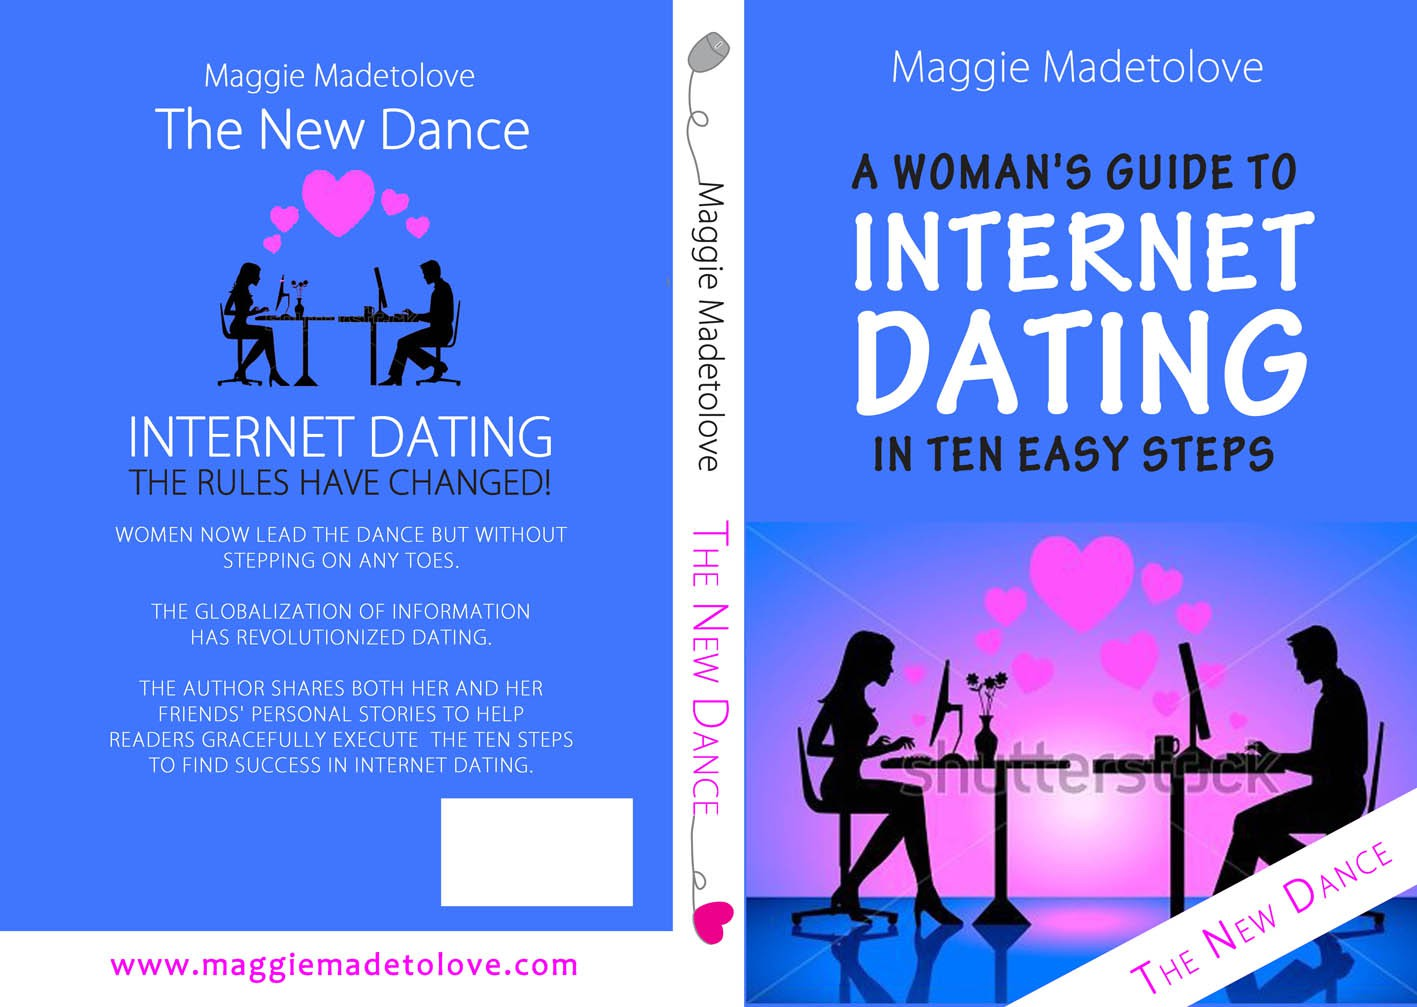 romantic artist needed for cover for internet dating book for Maggie Madetolove's book titled The New Dance; A Woman's G